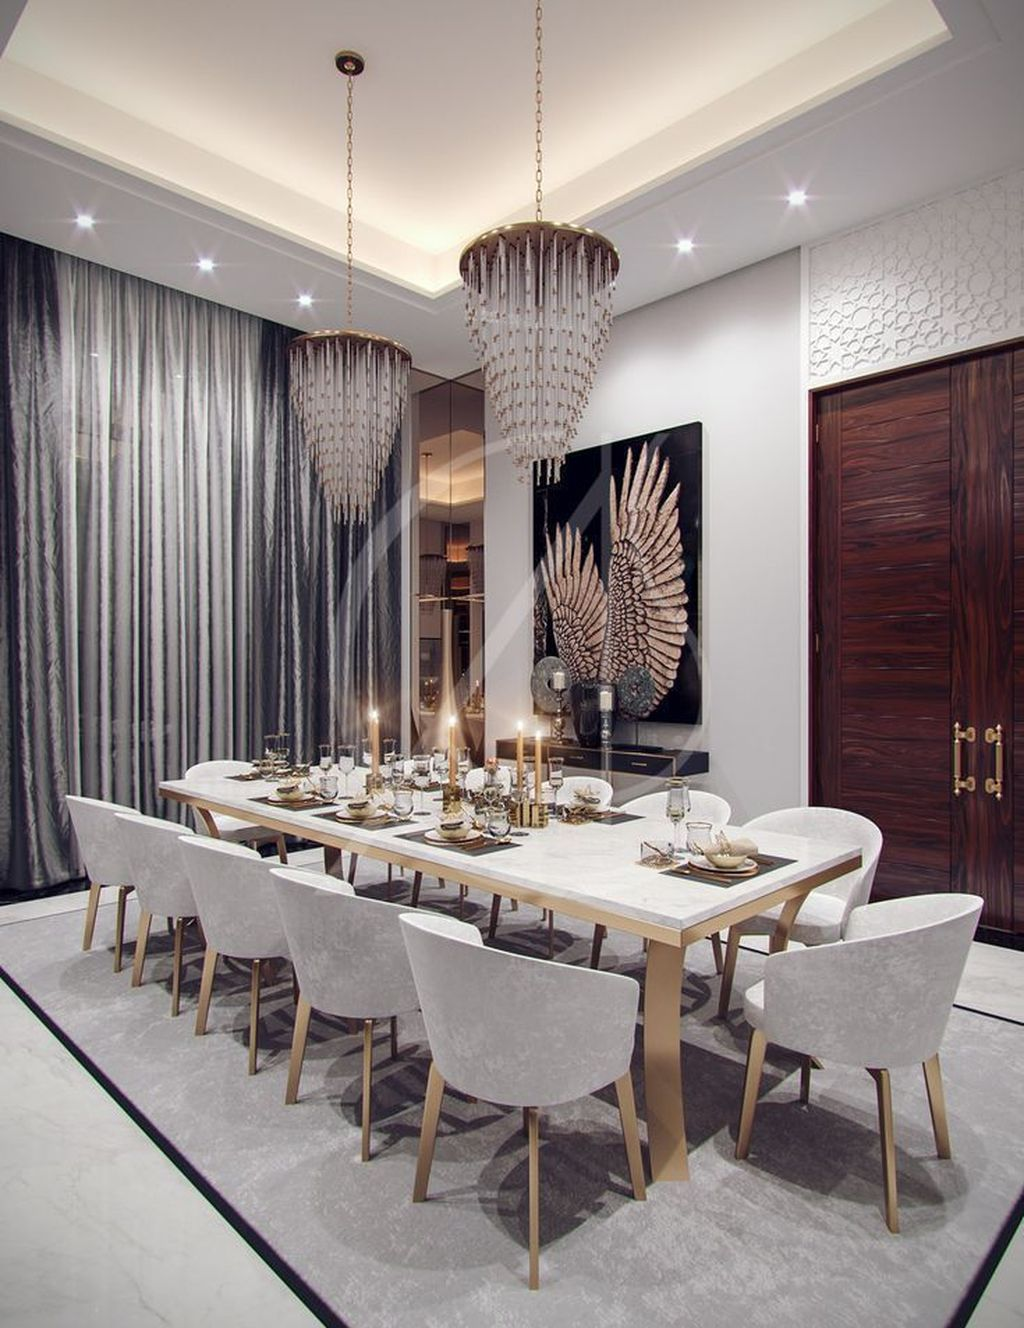 Amazing Modern Dining Room Design Ideas You Will Love 01